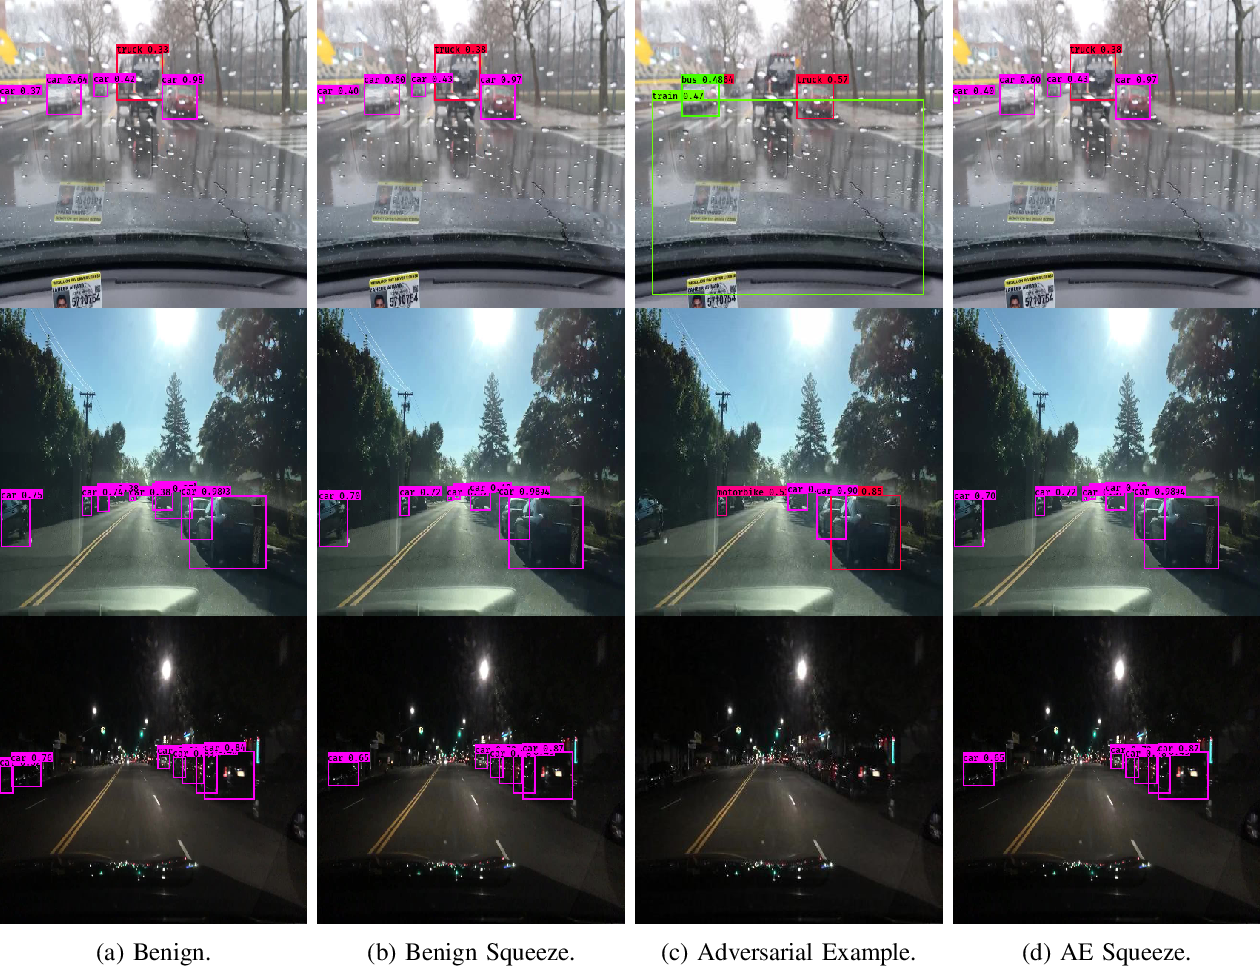 Figure 1 for Weighted Average Precision: Adversarial Example Detection in the Visual Perception of Autonomous Vehicles